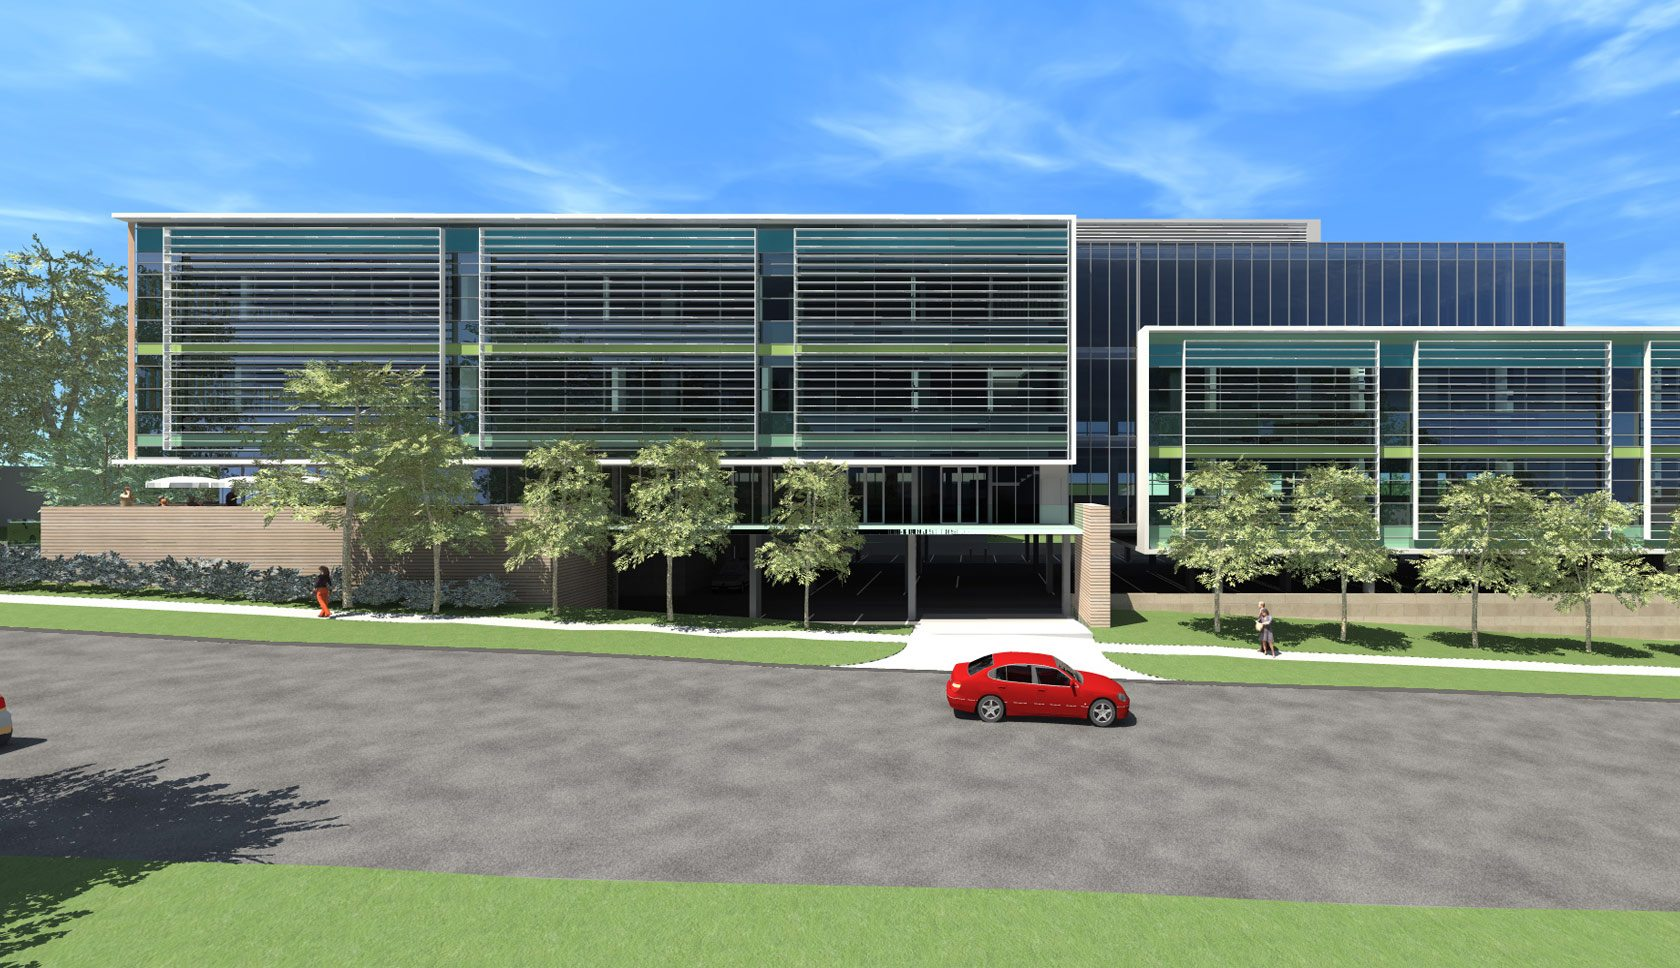 Sydney Adventist day surgery building design Hornsby